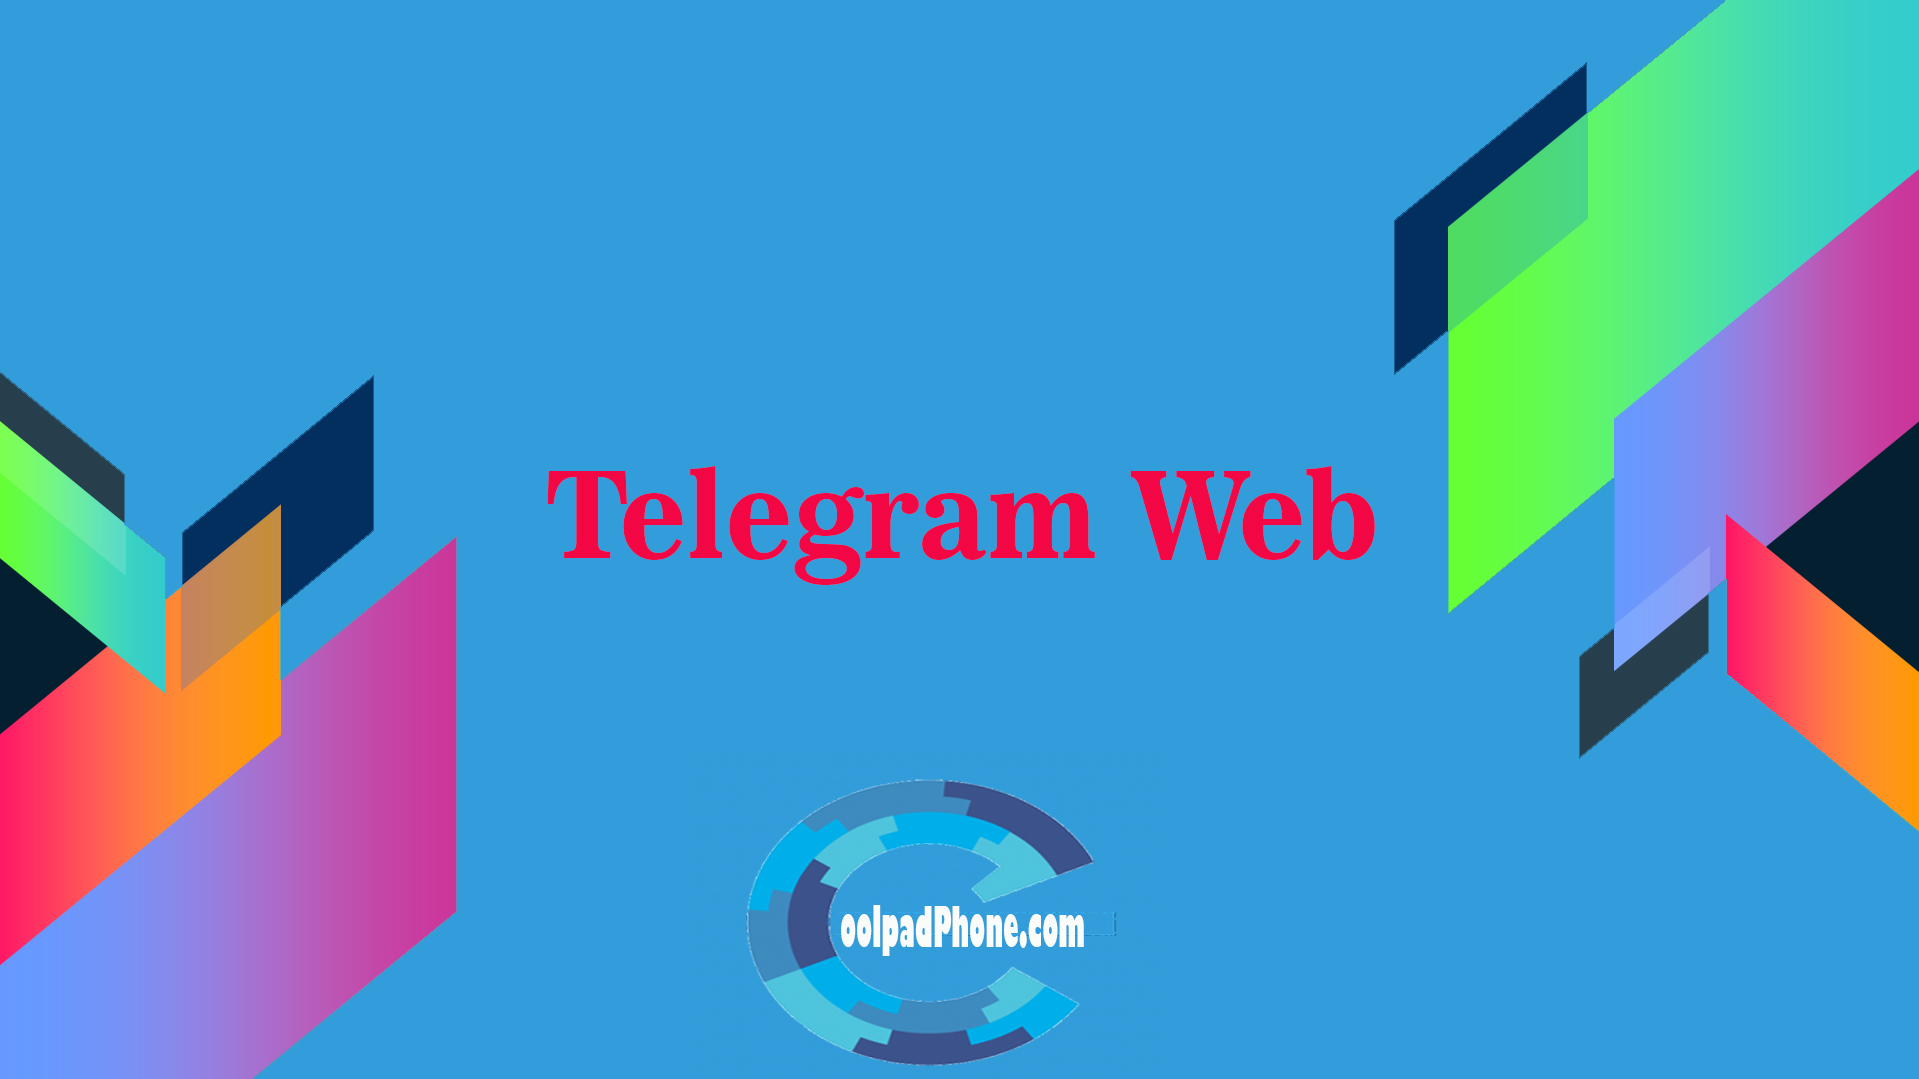 Telegram Web